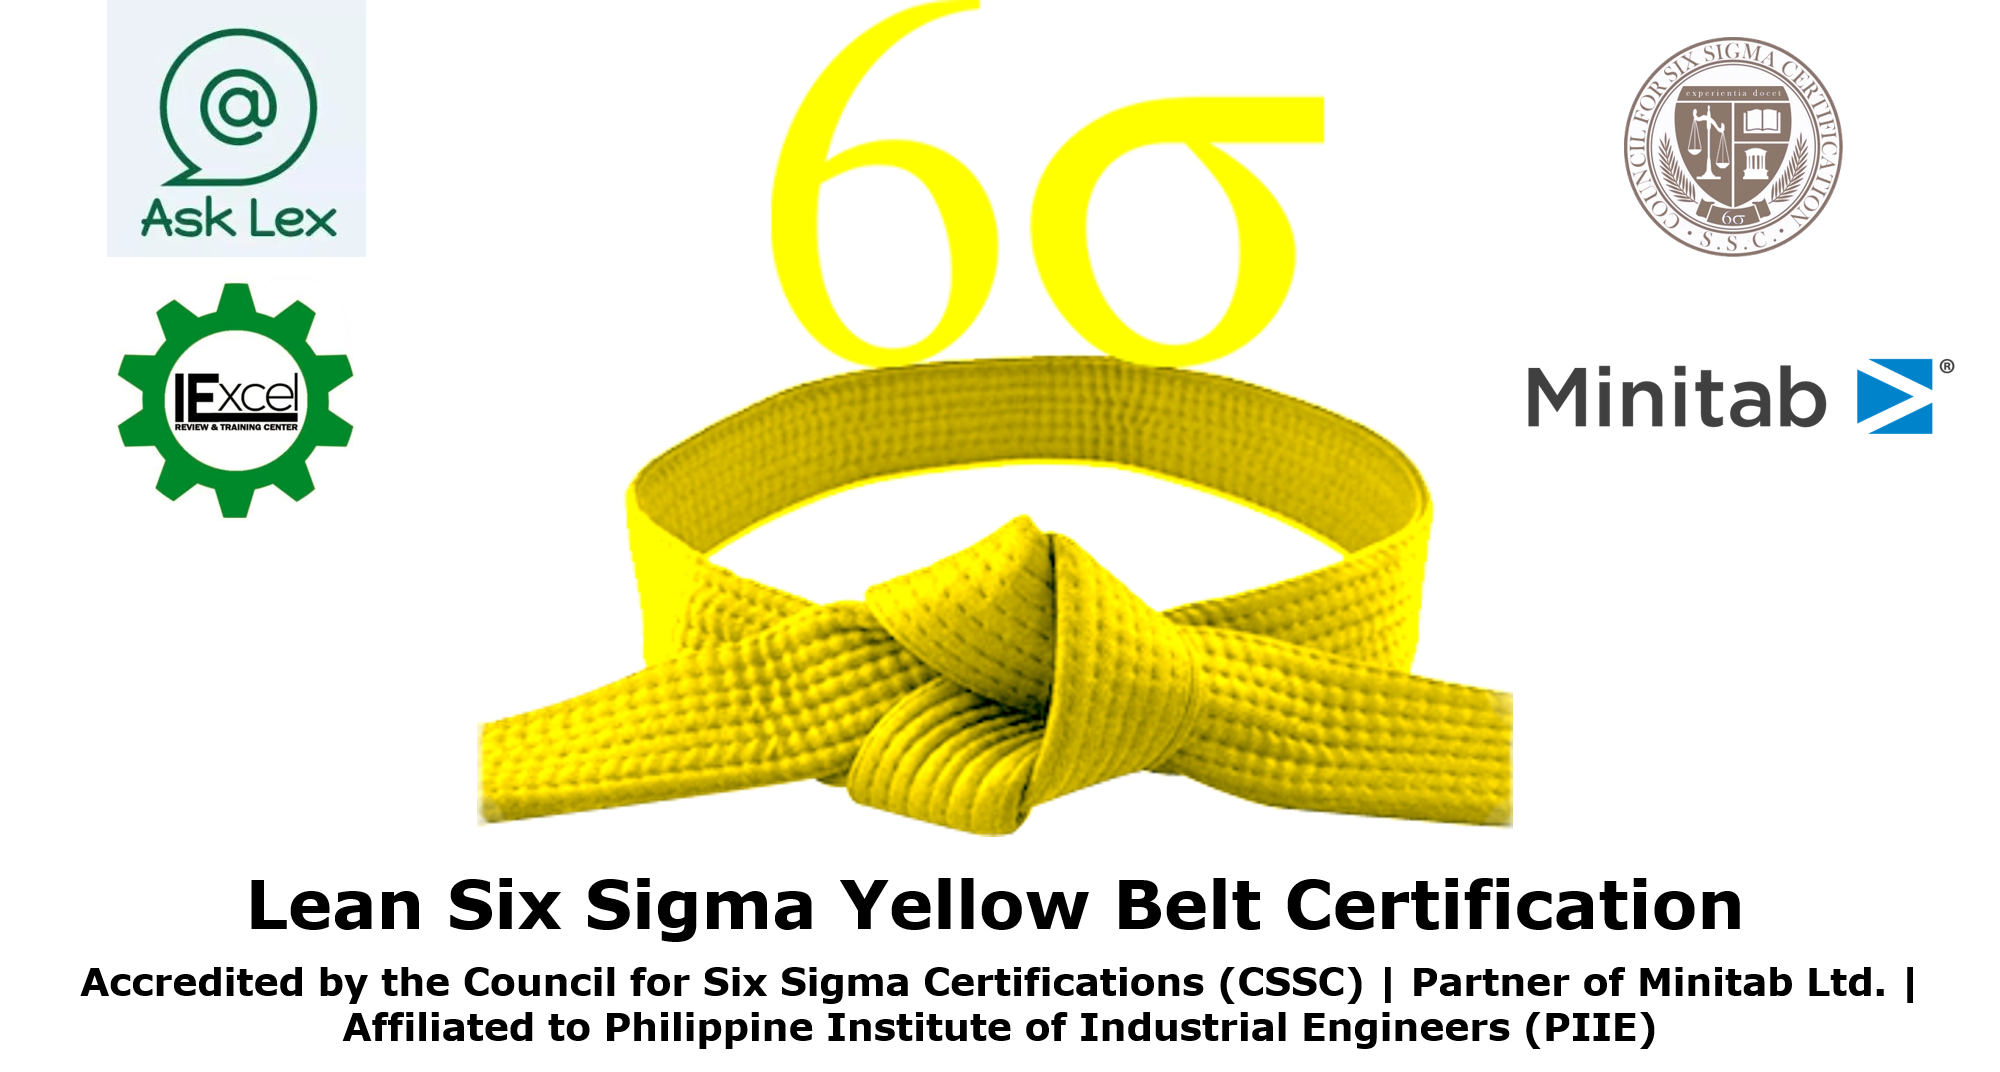 Lean six sigma yellow belt certification accredited by the lean six sigma yellow belt certification accredited by the council for six sigma certifications cssc asklex educational and review center xflitez Images